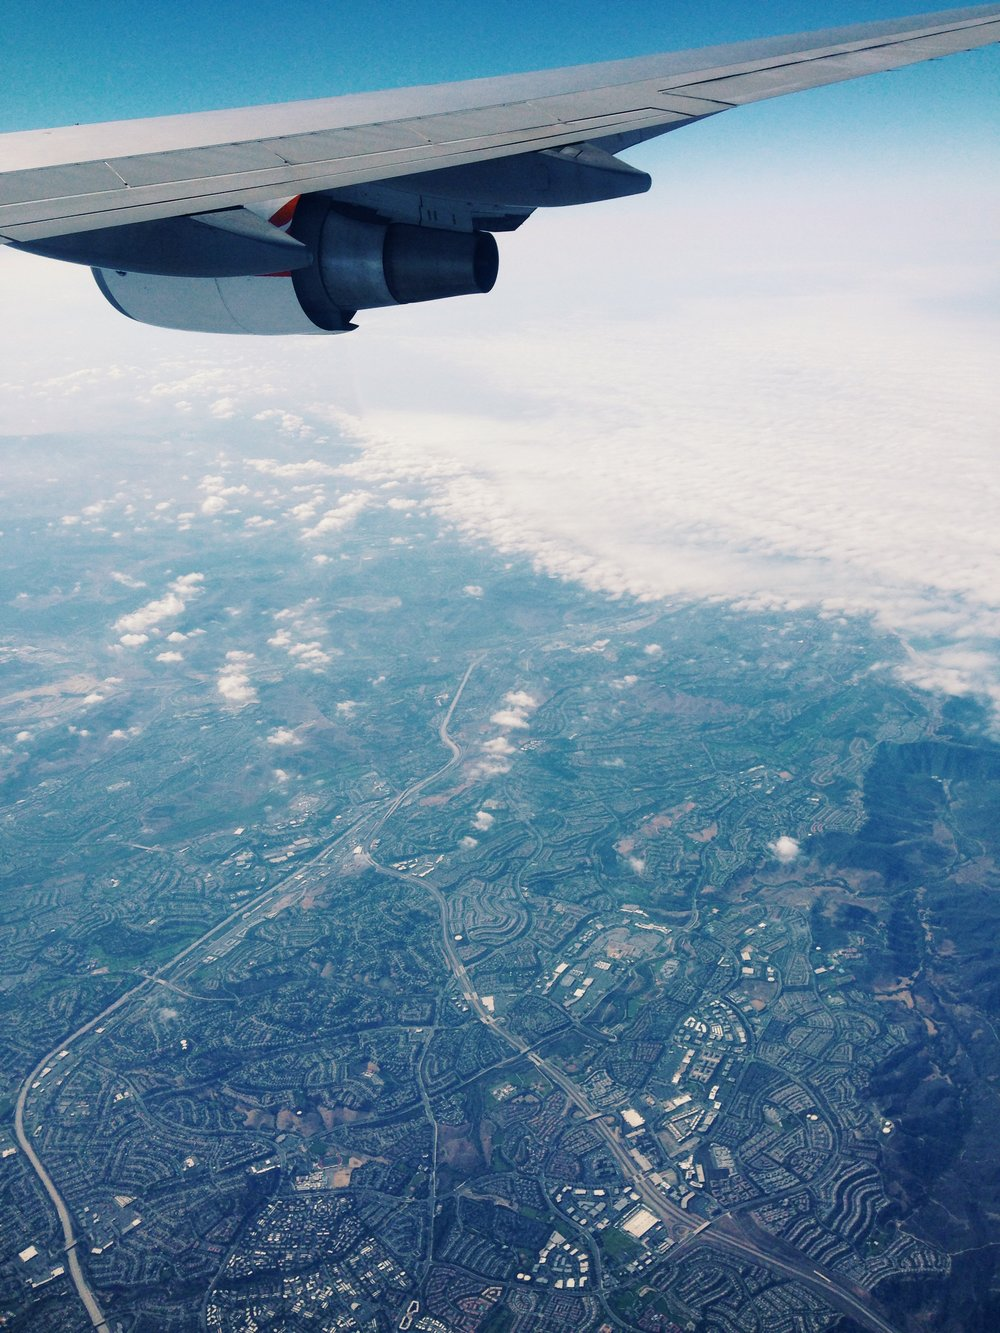 If you fly LAX-->NYC, make sure you get a window seat on the right. The view is spectacular